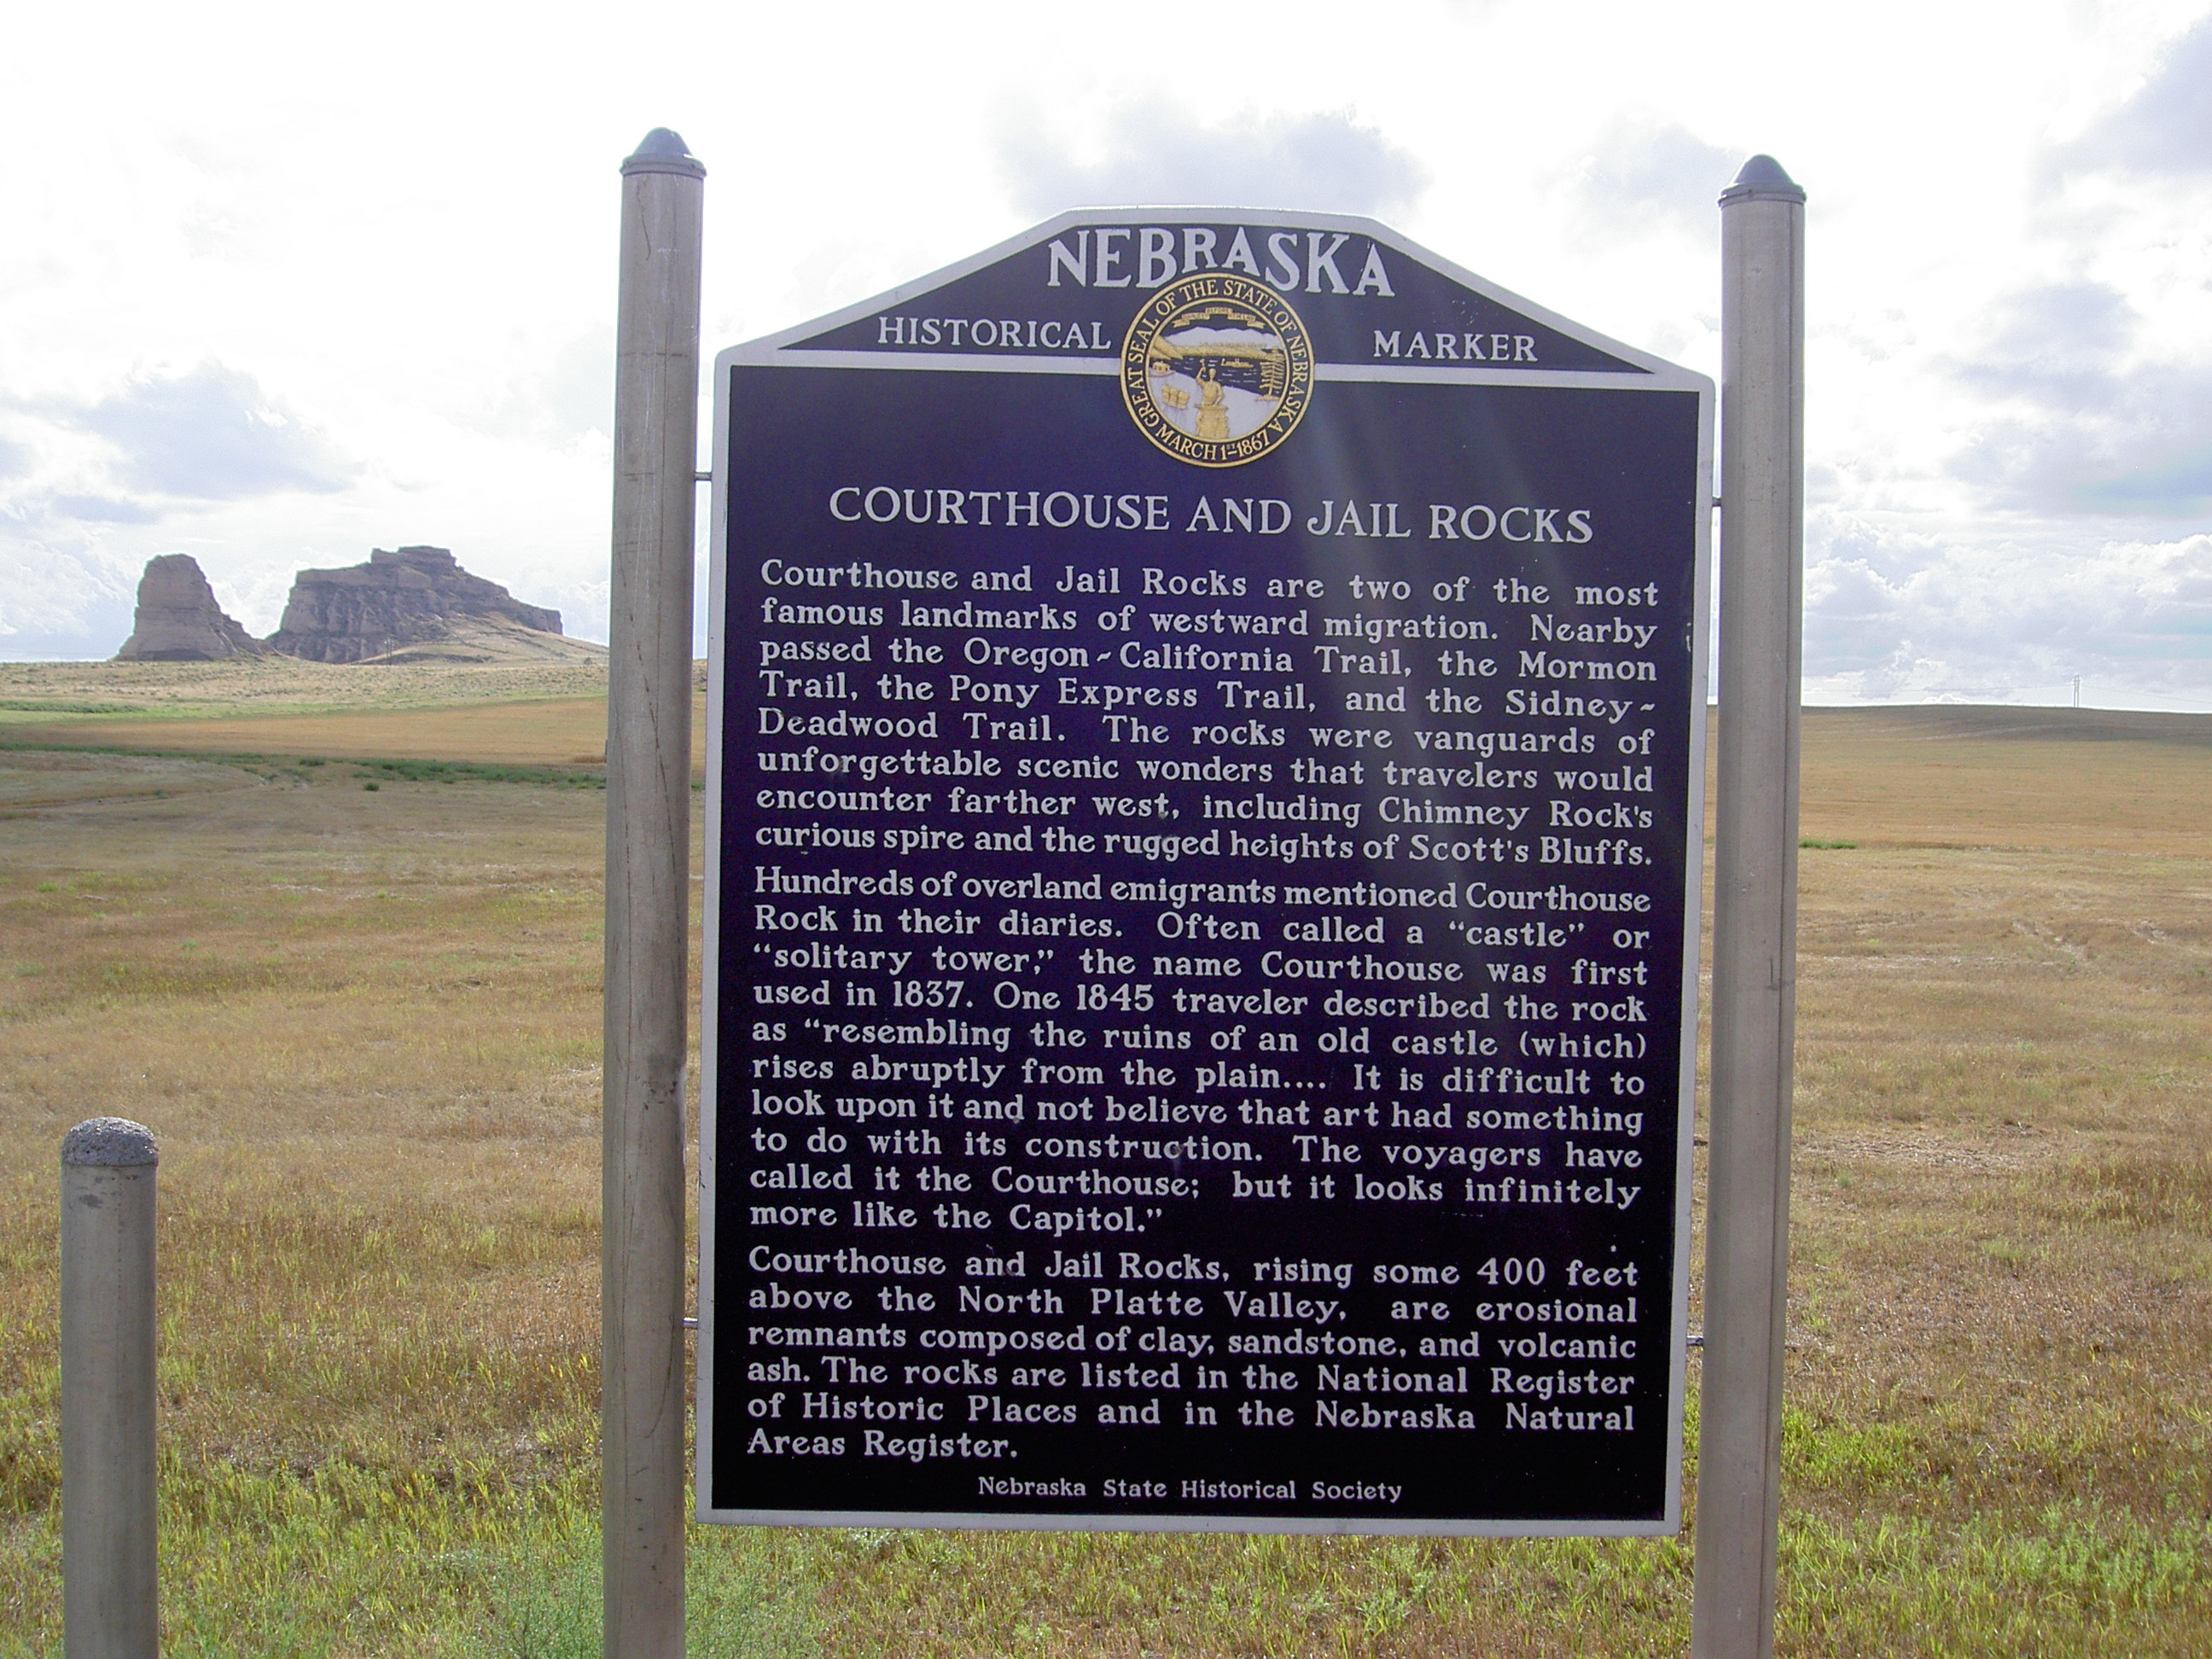 Courthouse Rock & Jail Rock (Nebraska) sign